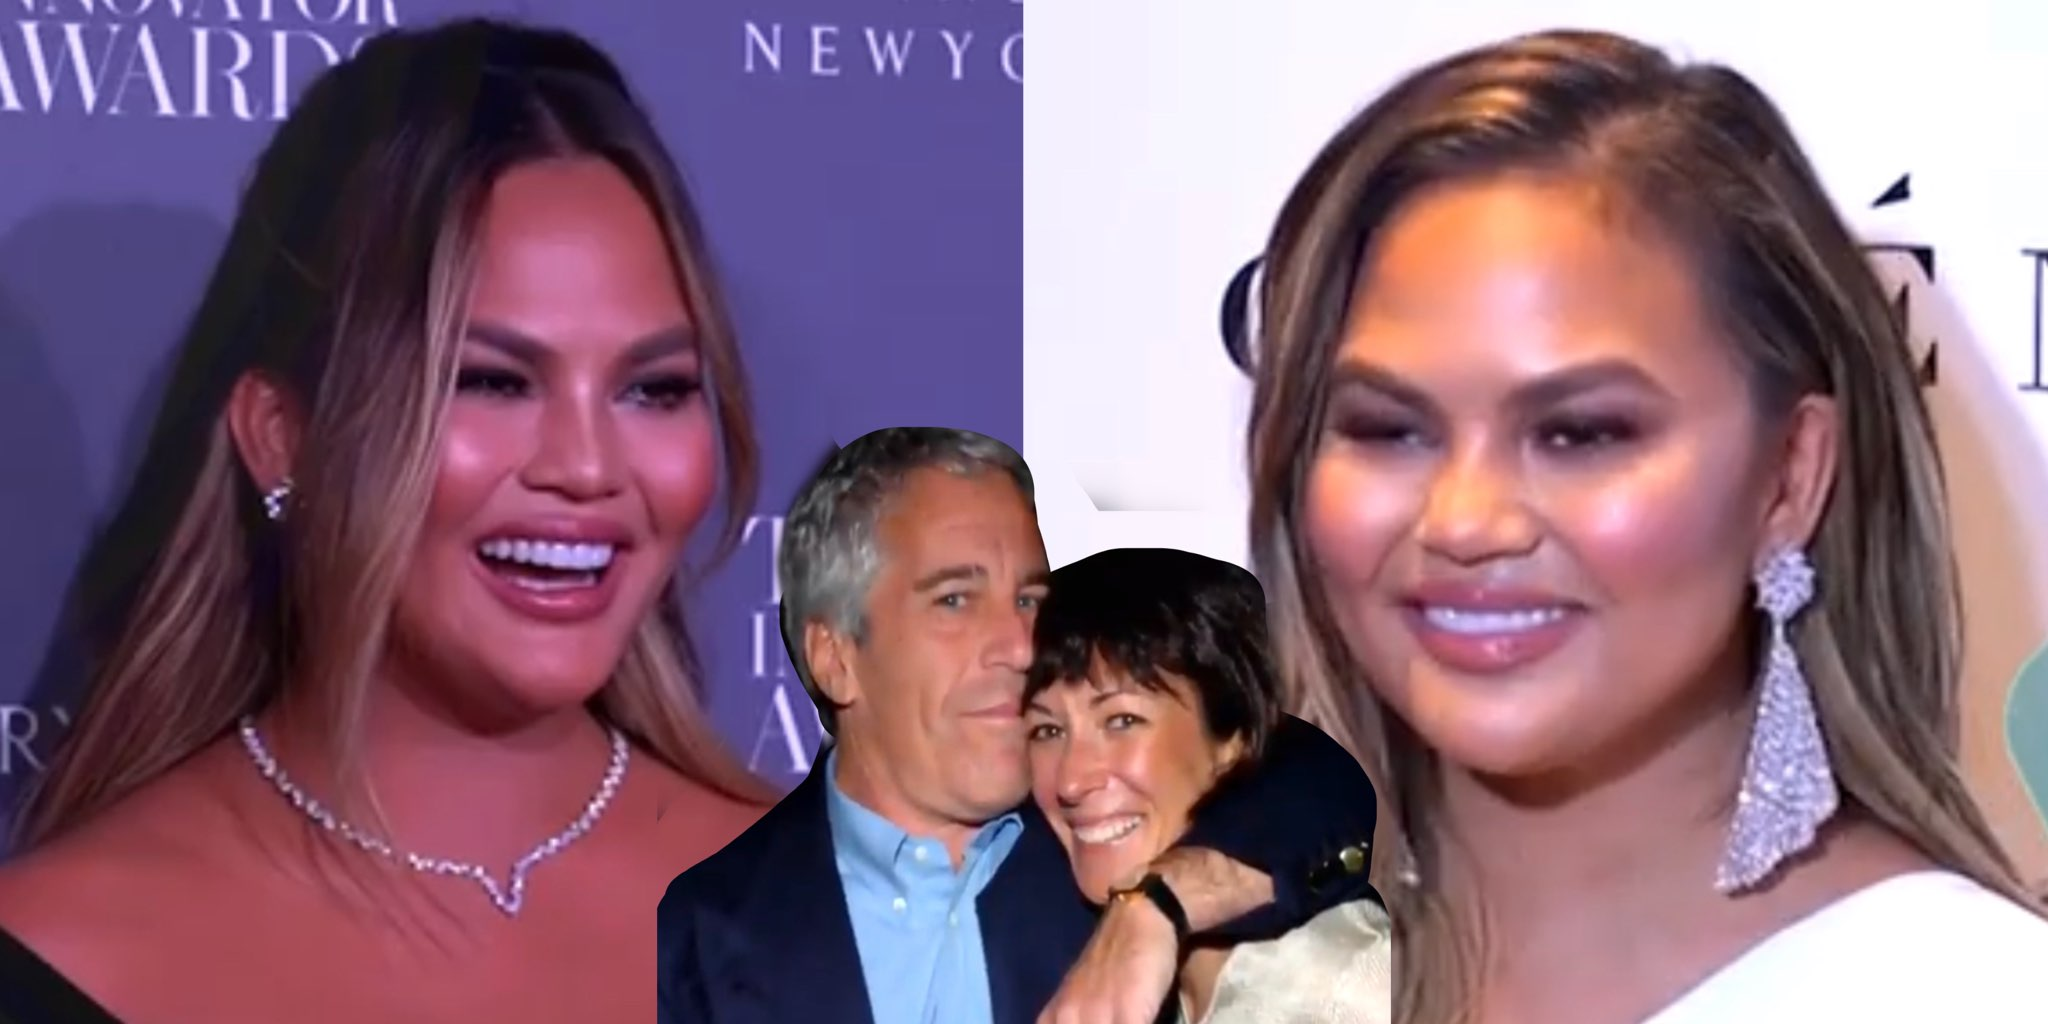 Chrissy Teigen Jokes That Shes Free After President